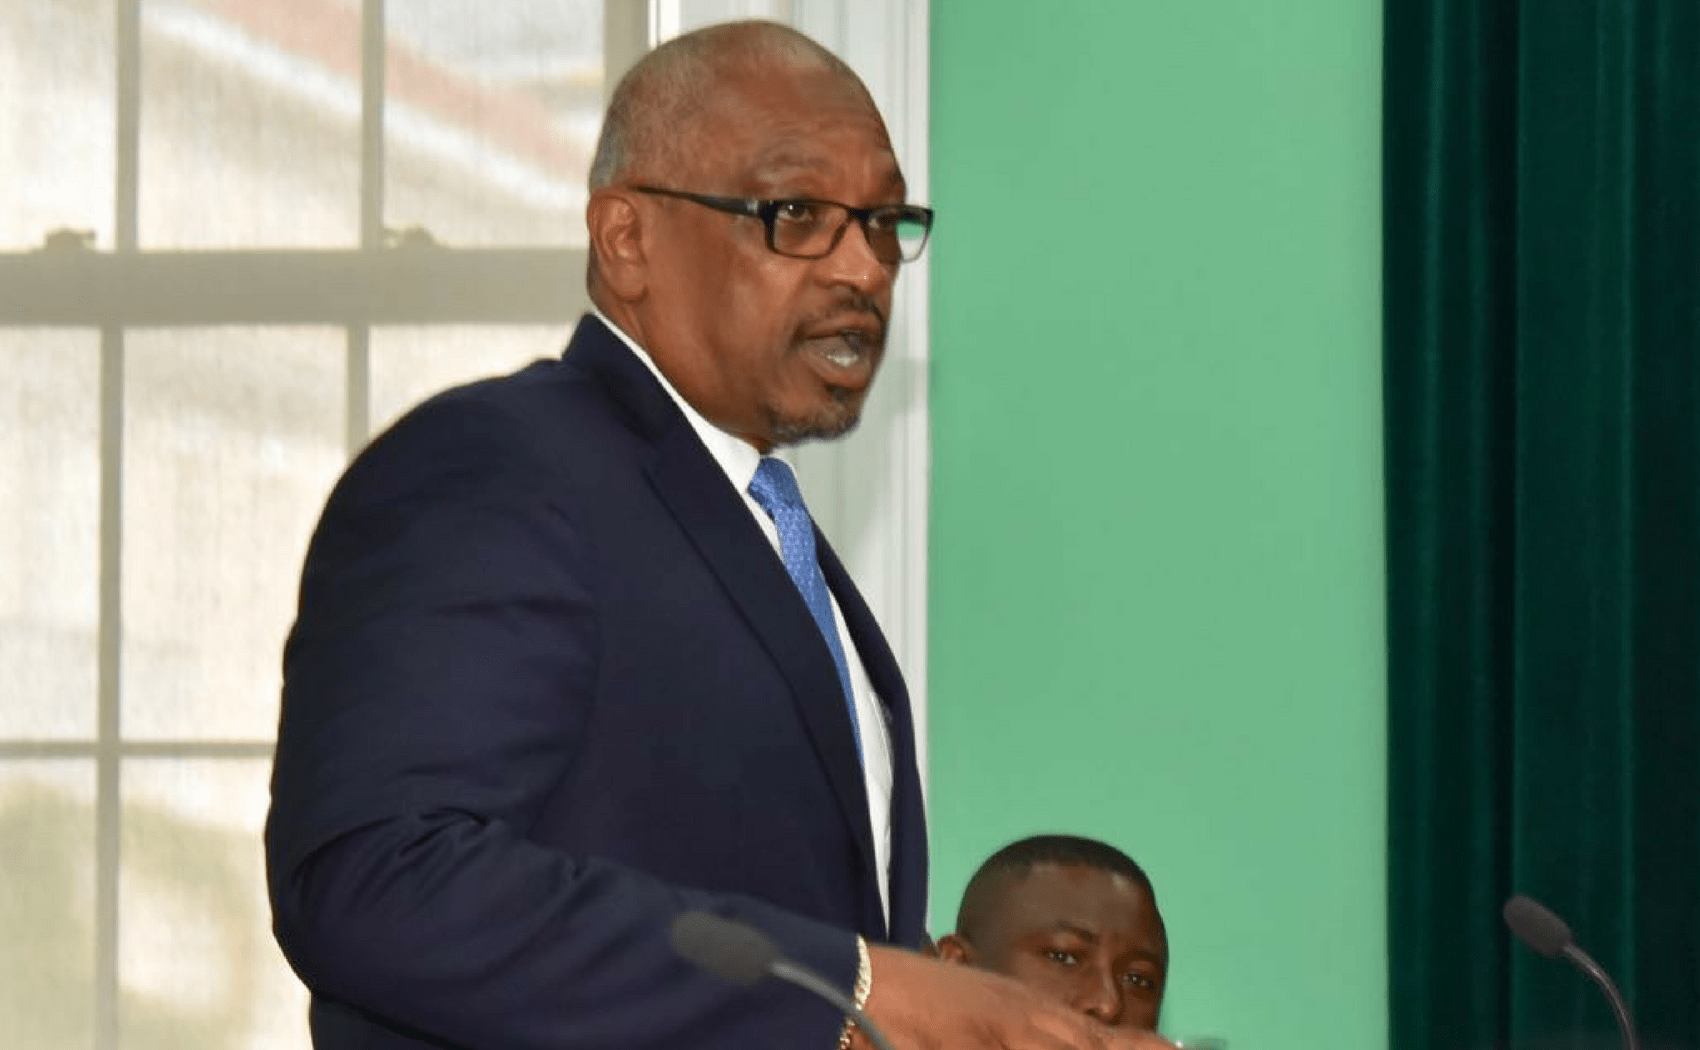 PM announces HOA for sale of Grand Lucayan to be signed March 2